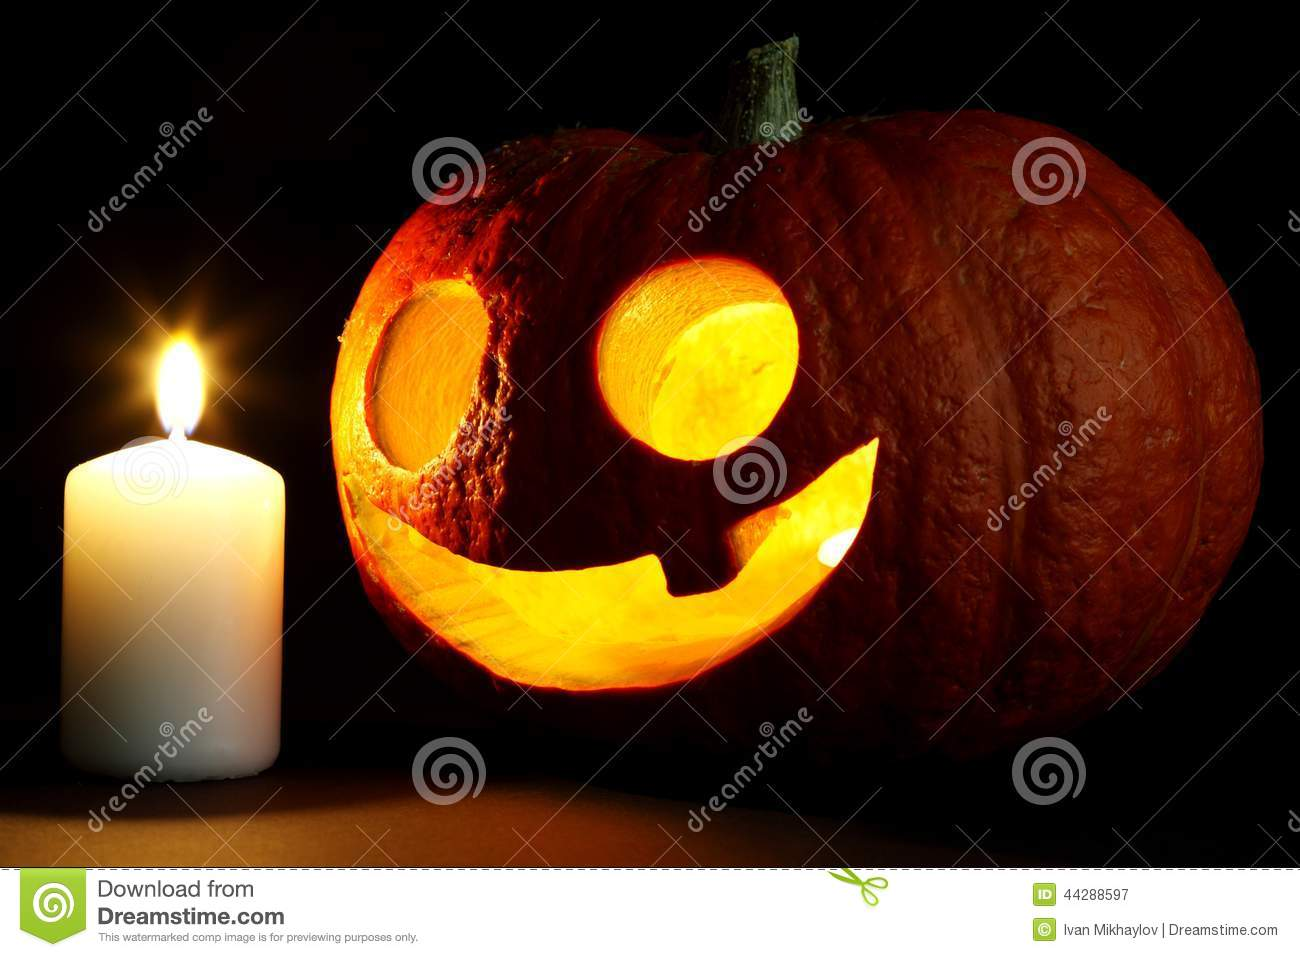 Halloween Pumpkin And Candle Stock Photo - Image: 44288597